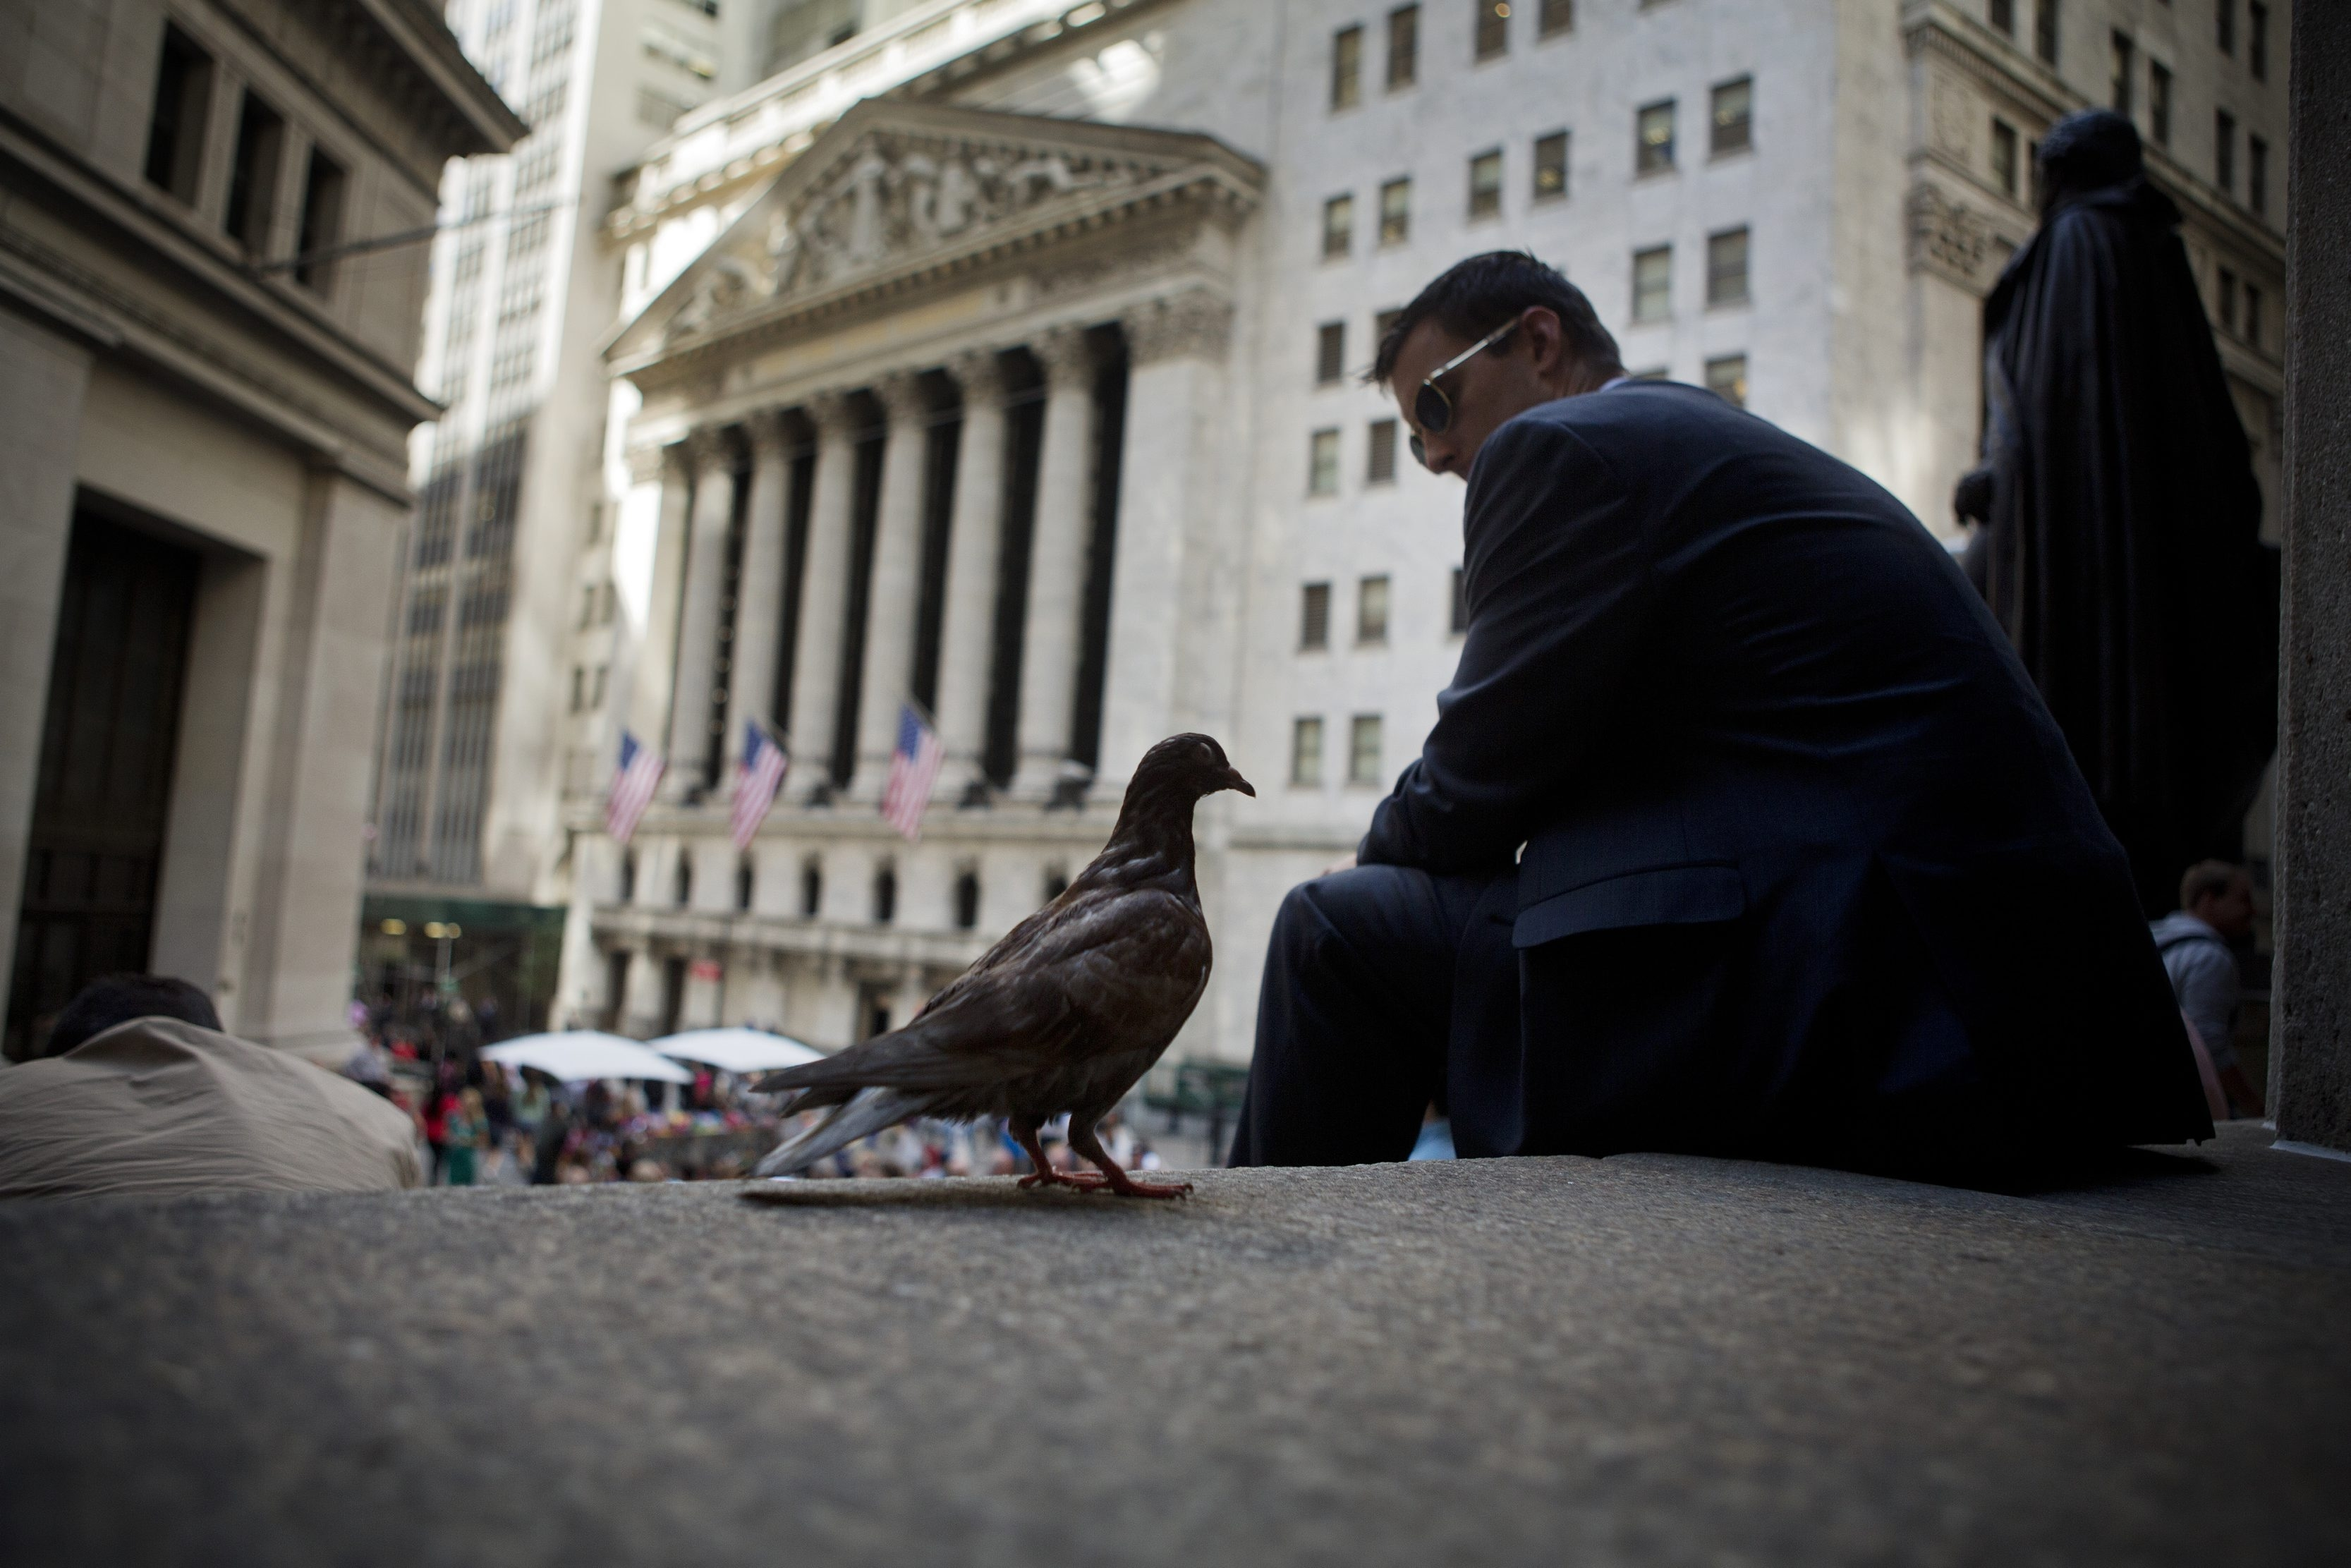 On the Federal Hall steps, a pigeon keeps a man company across from the New York Stock Exchange in climate of buybacks, which are helping to prop up a bull market that is entering its seventh year just as investors bail out and head back to bonds.